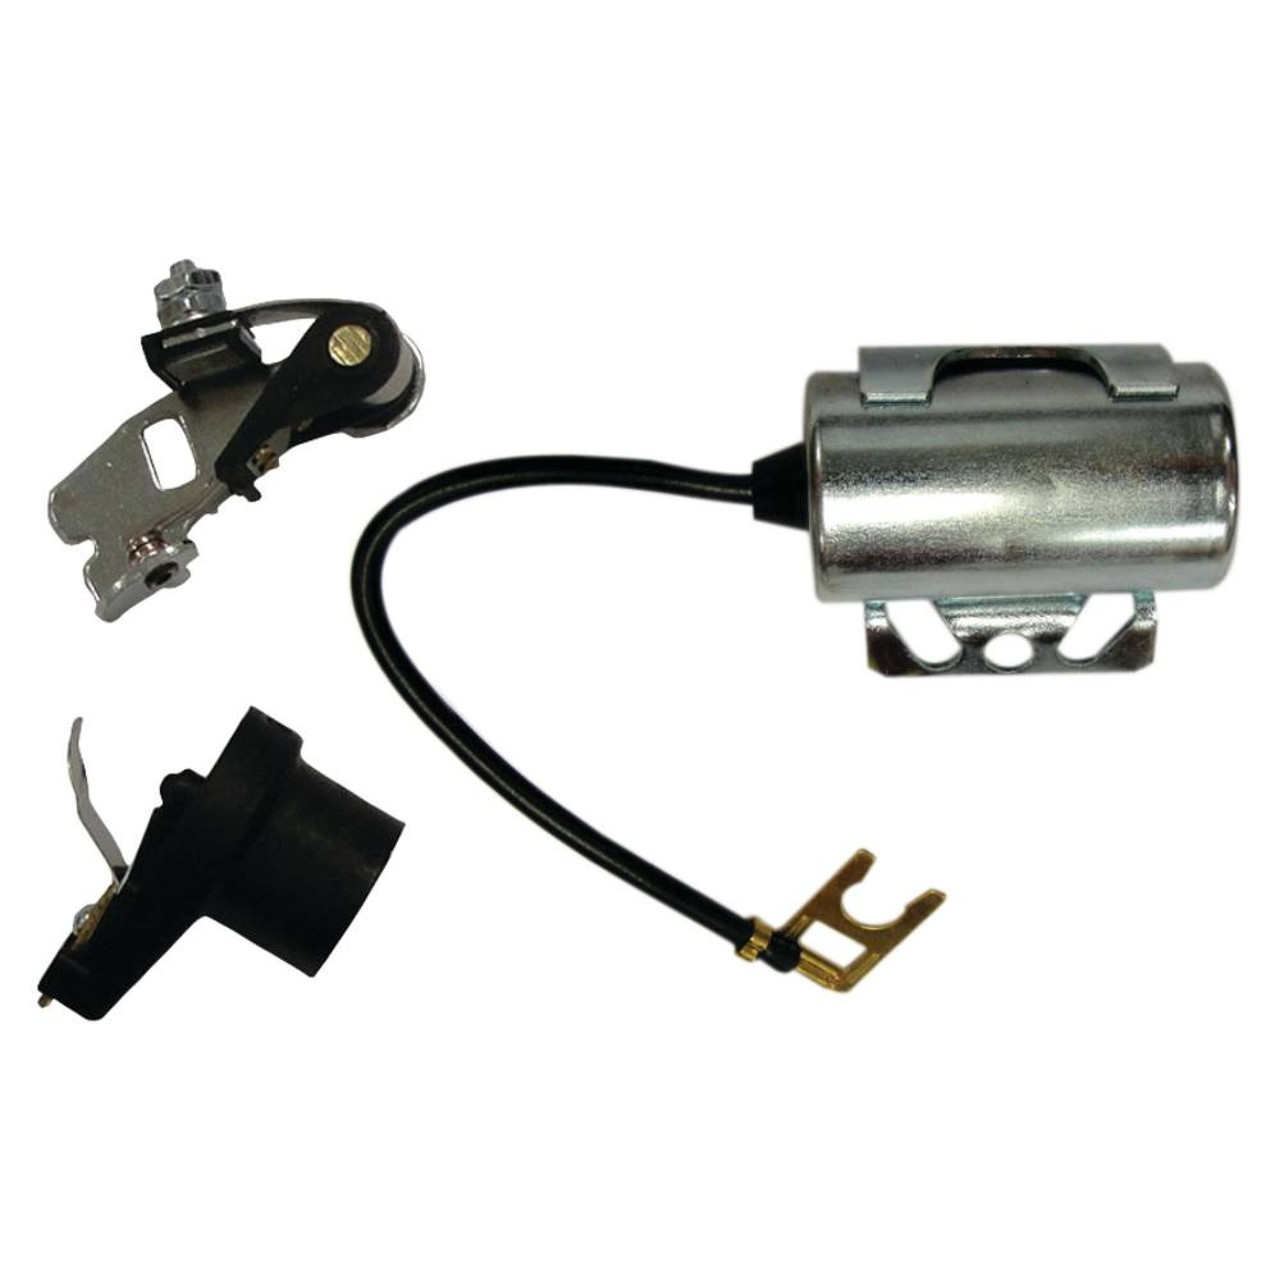 Black Complete Tractor 1400-5058 New IGN kit for John Deere 1010 2010 inc. Points condensor Rotor